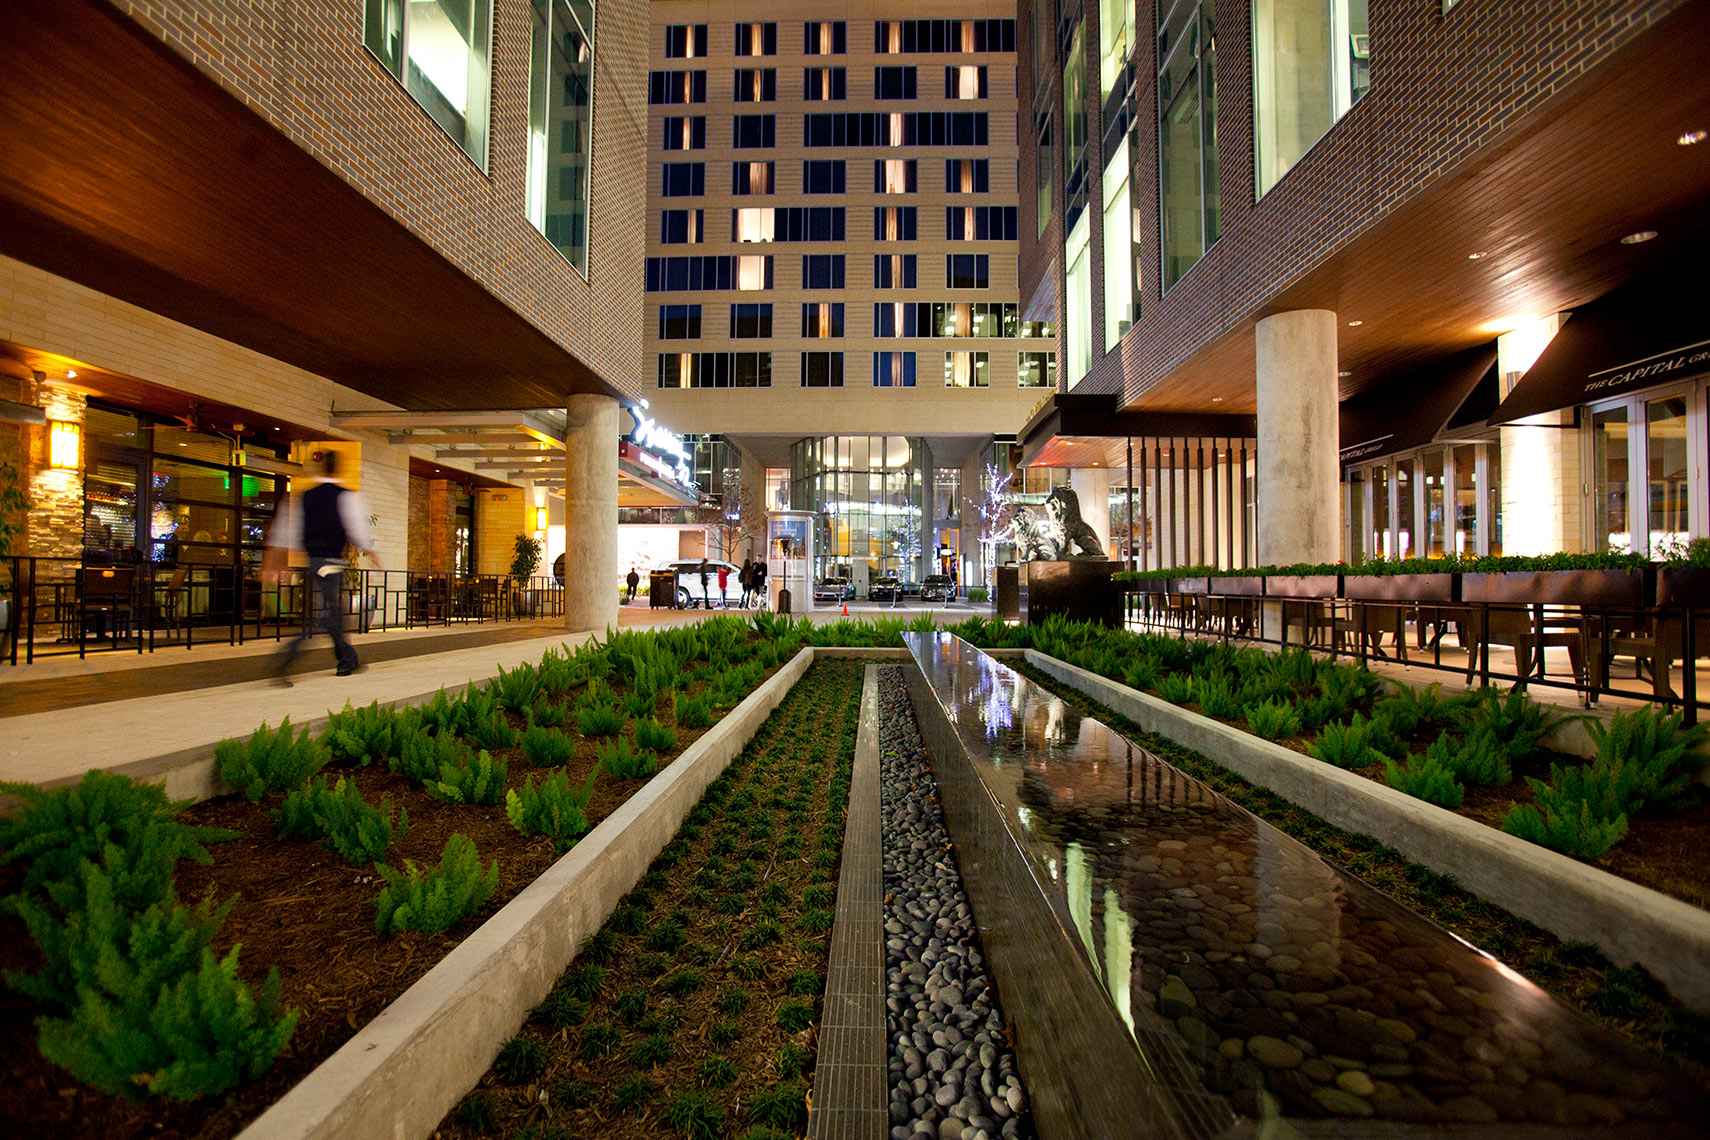 an Architectural photograph of Hotel Sorrella at CityCentre in Houston, Texas